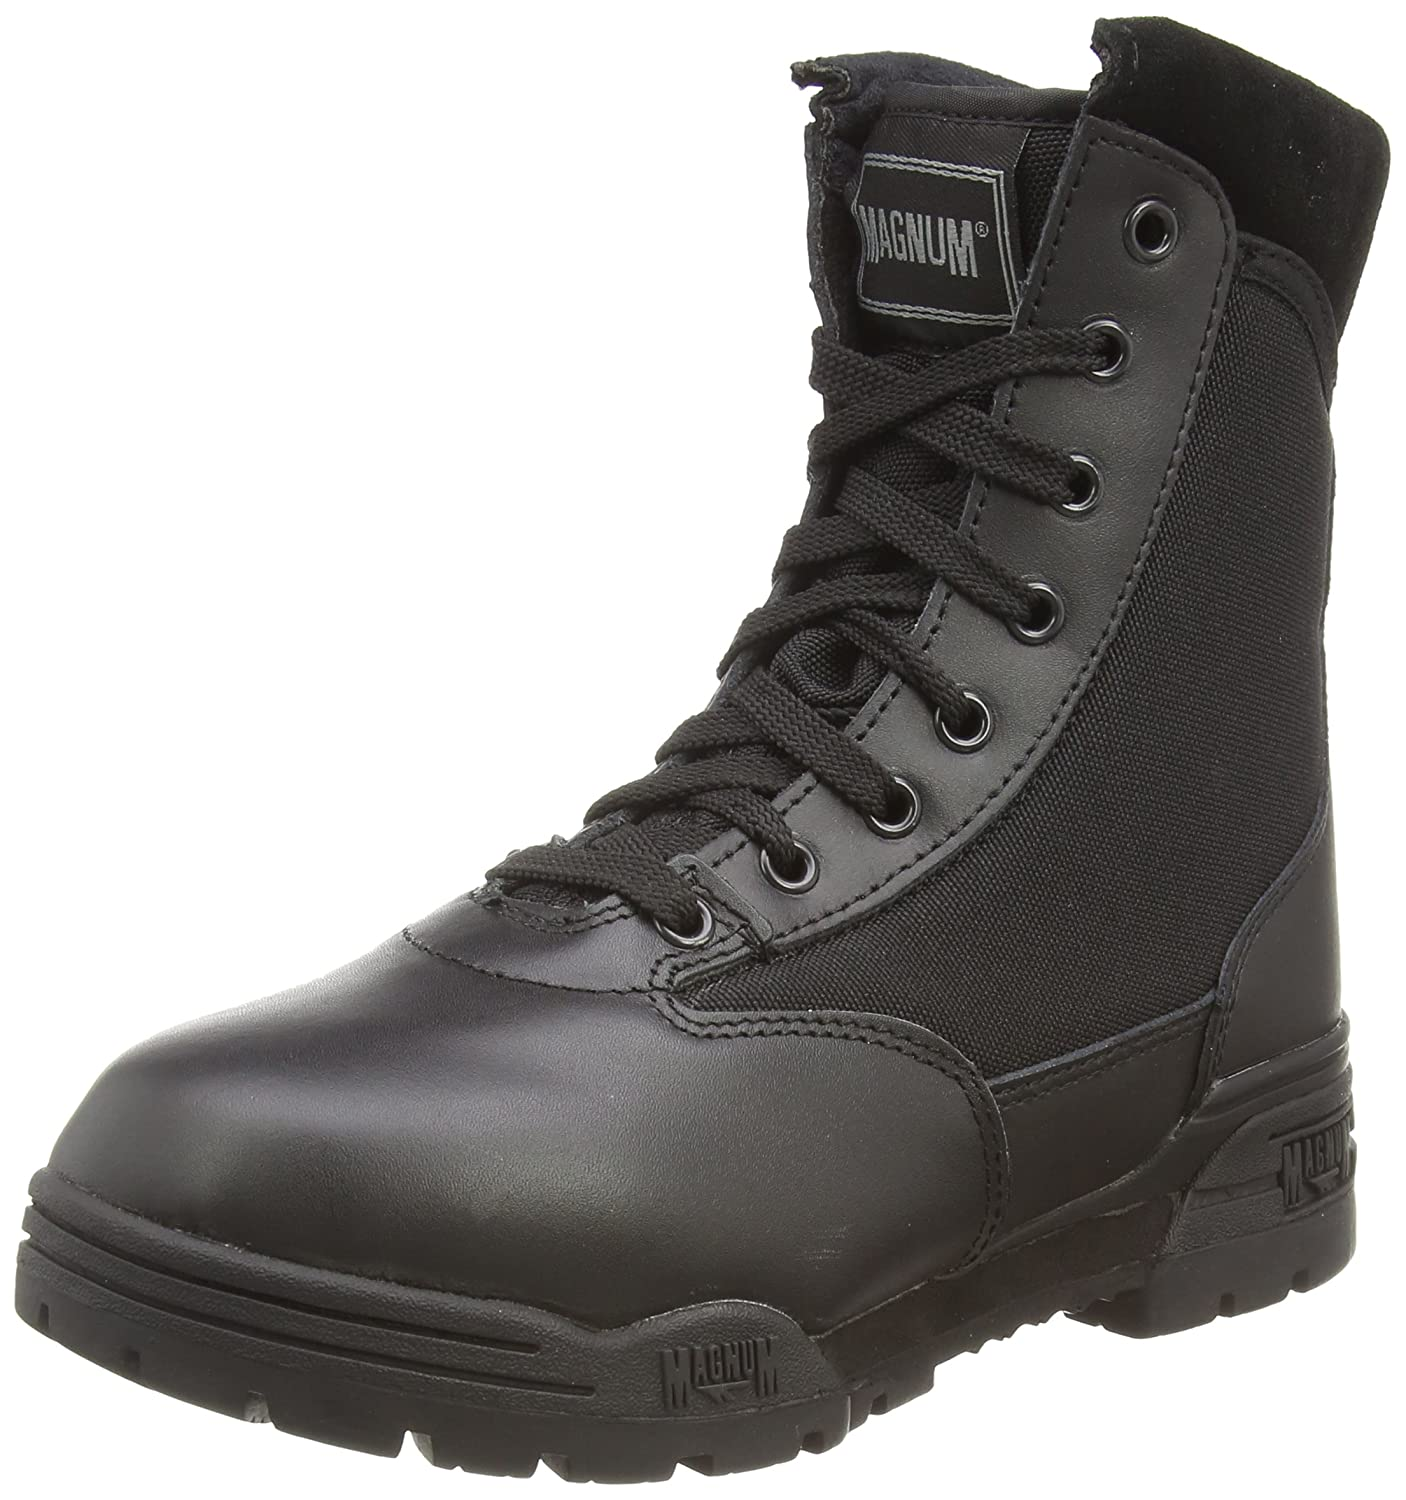 Magnum Classic, Unisex Adults' Boots Unisex Adults' Boots M800892/021